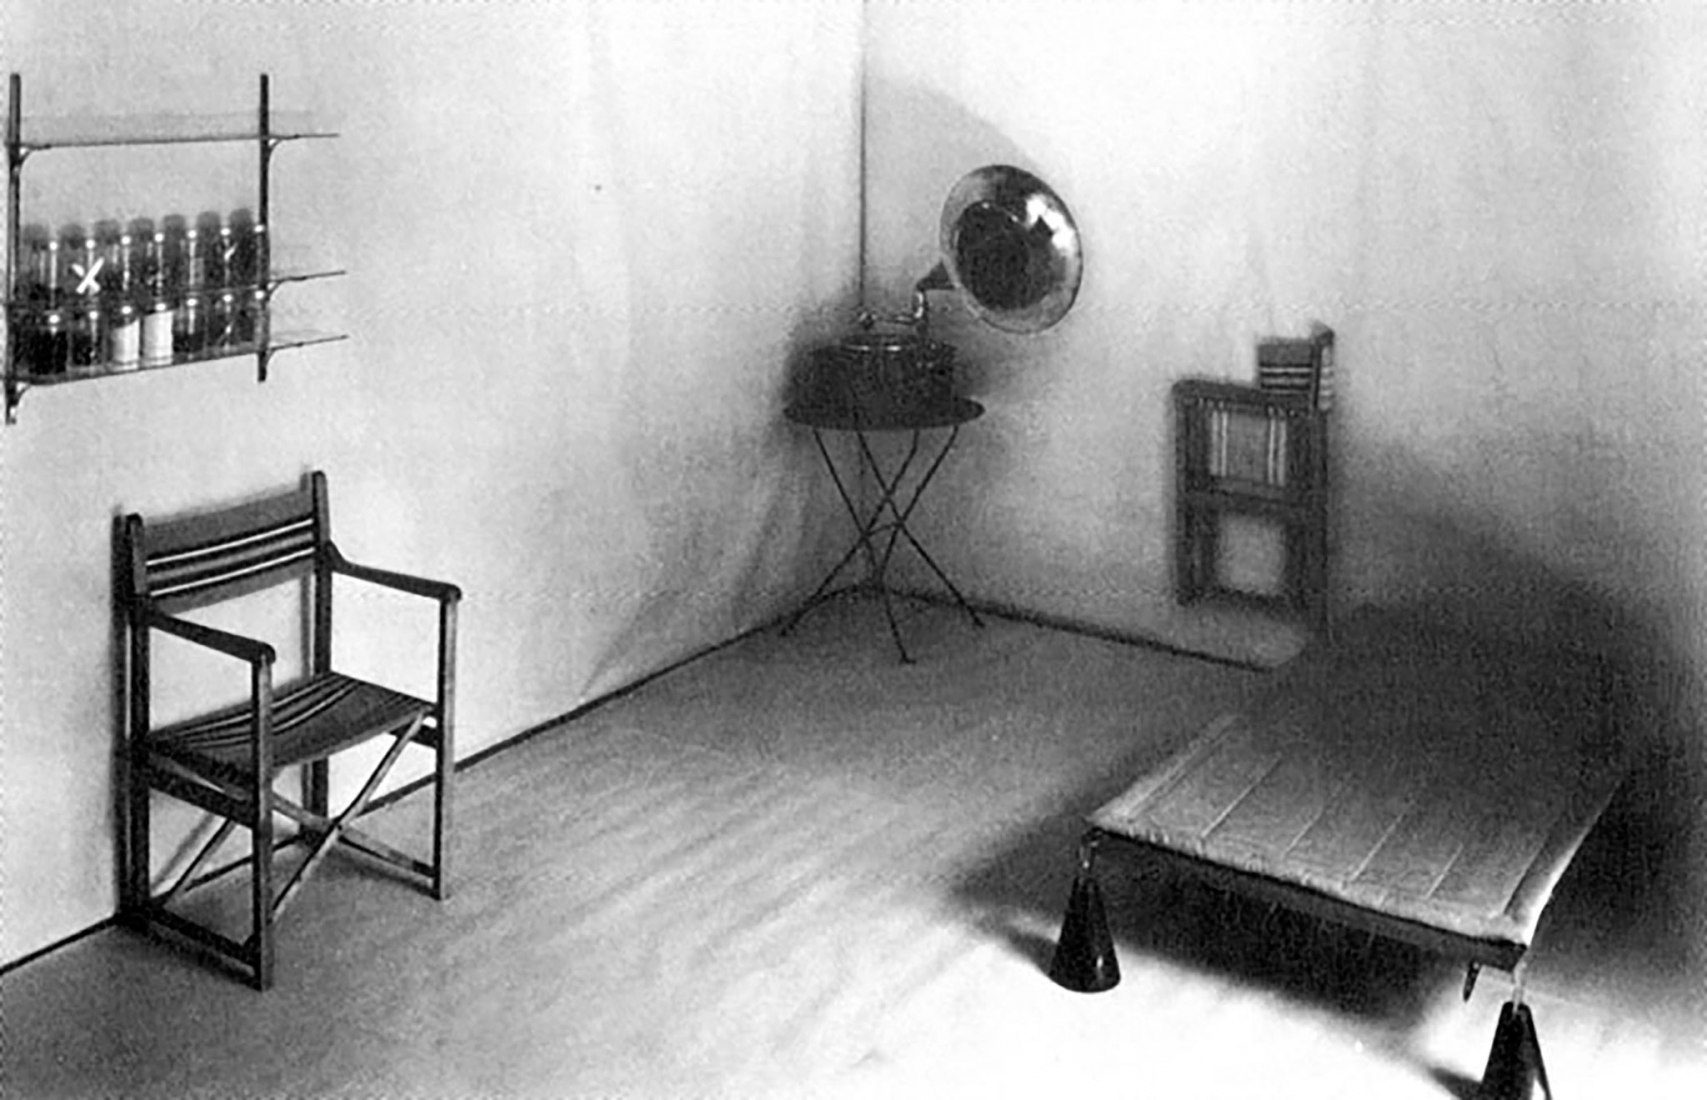 The Co-co room by Hannes Meyer. 1926. Photograph by Hoffmann, Basel, BHA.